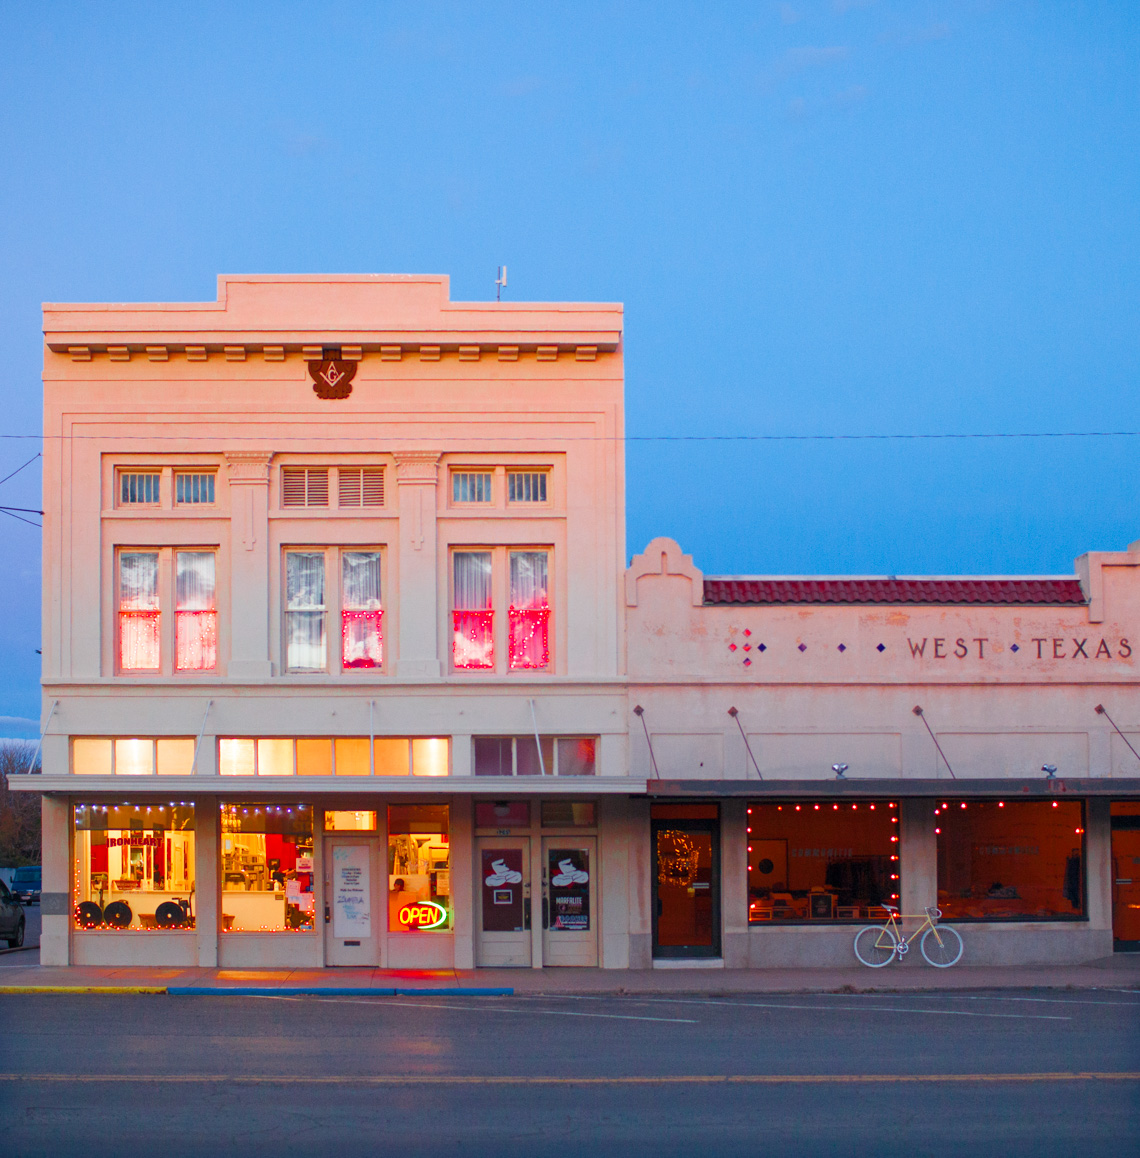 TRAVEL IMAGE OF MARFA TEXAS | TOSCA RADIGONDA PHOTOGRAPHY